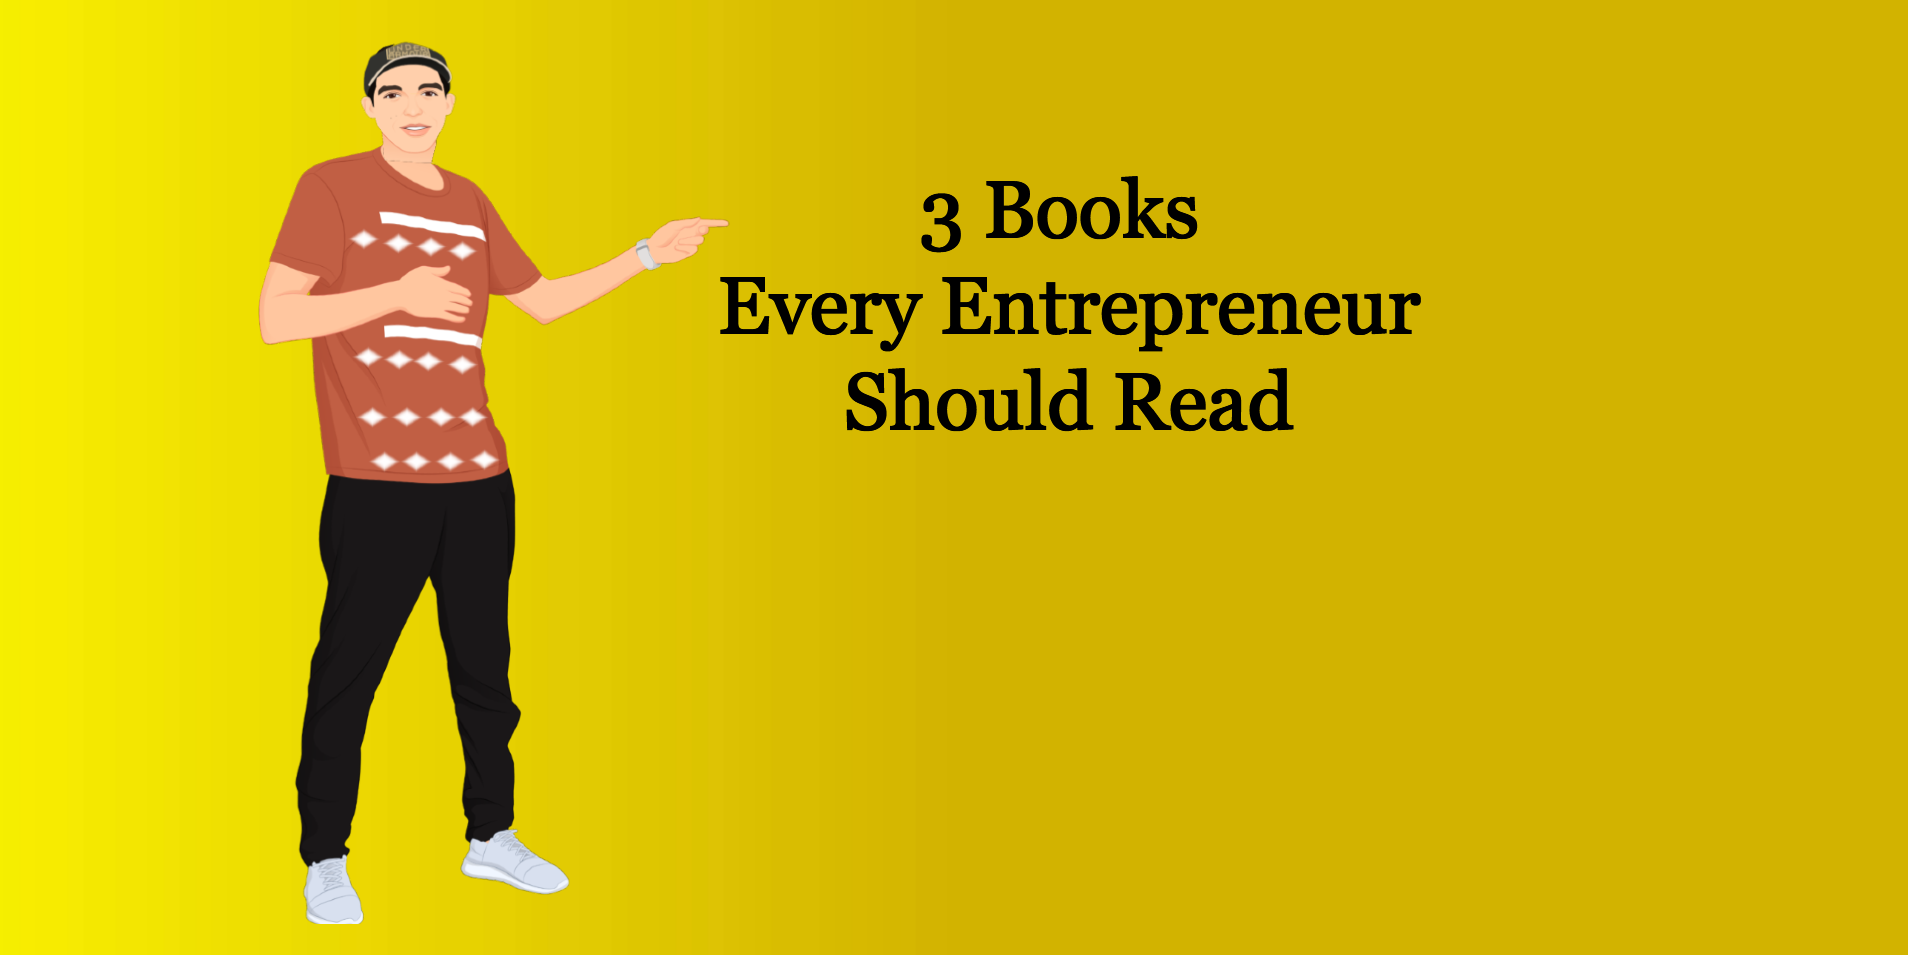 books evry entrepreneur should read